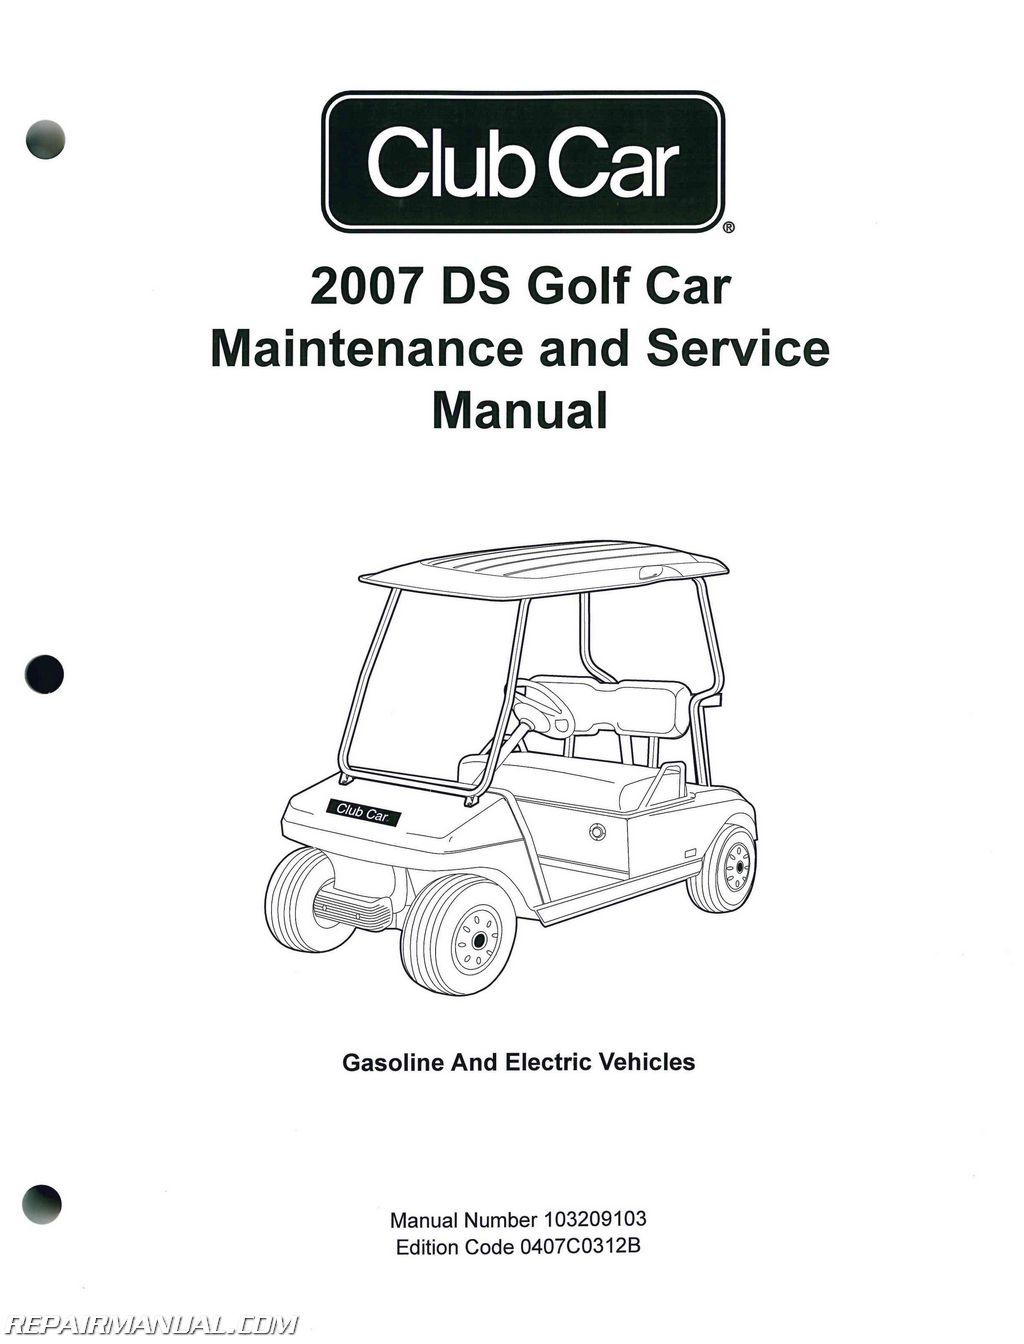 Nyi Bl: How to fix electric golf cart batteries